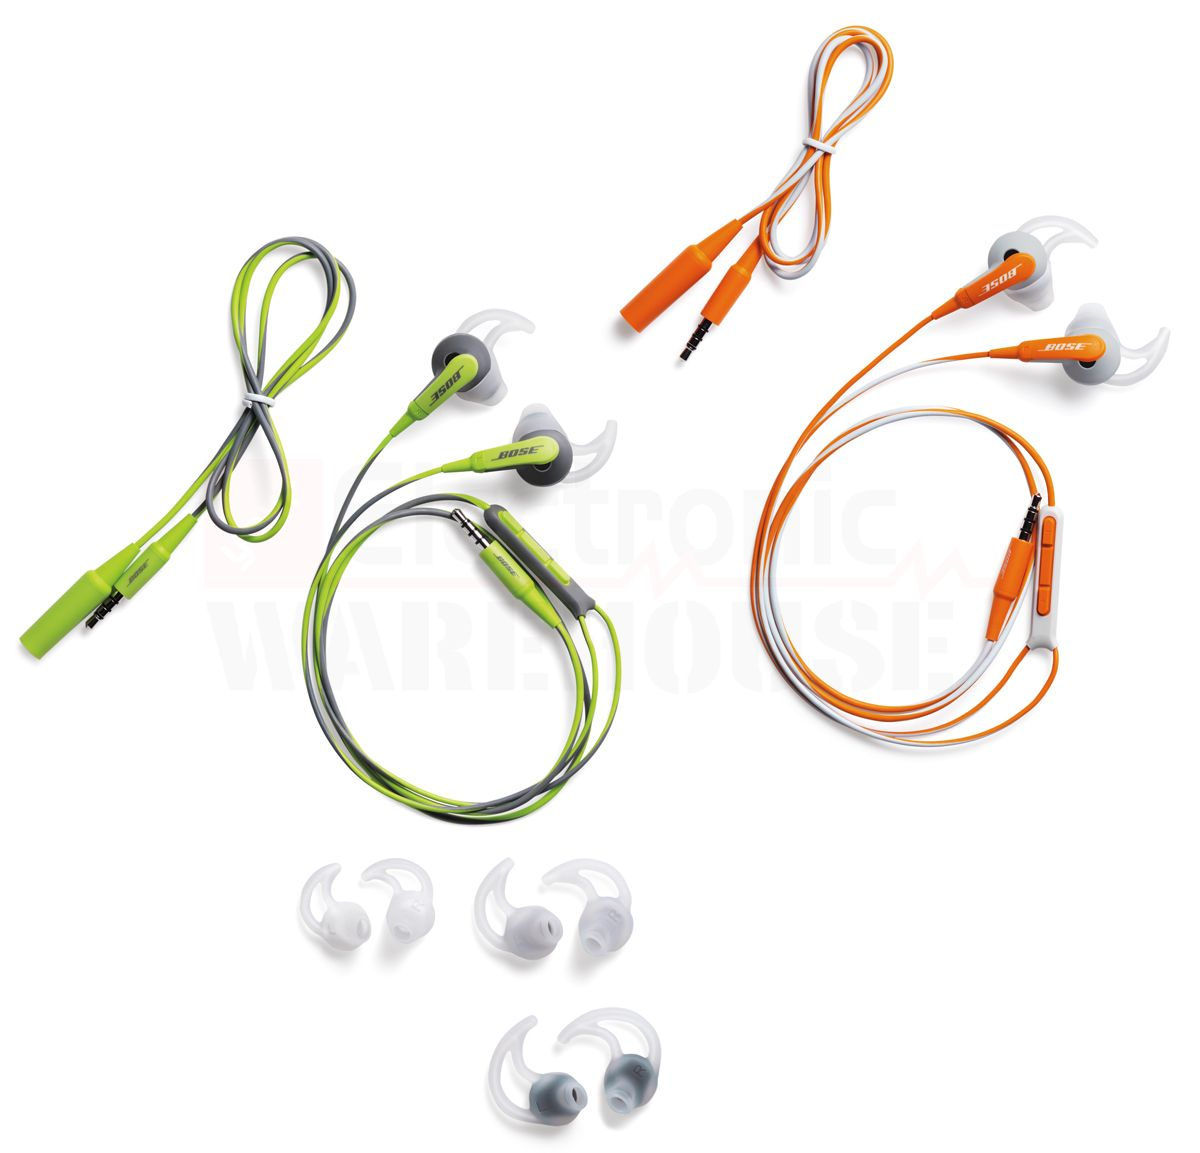 Bose SIE2 and SIE2i Sport Headphones